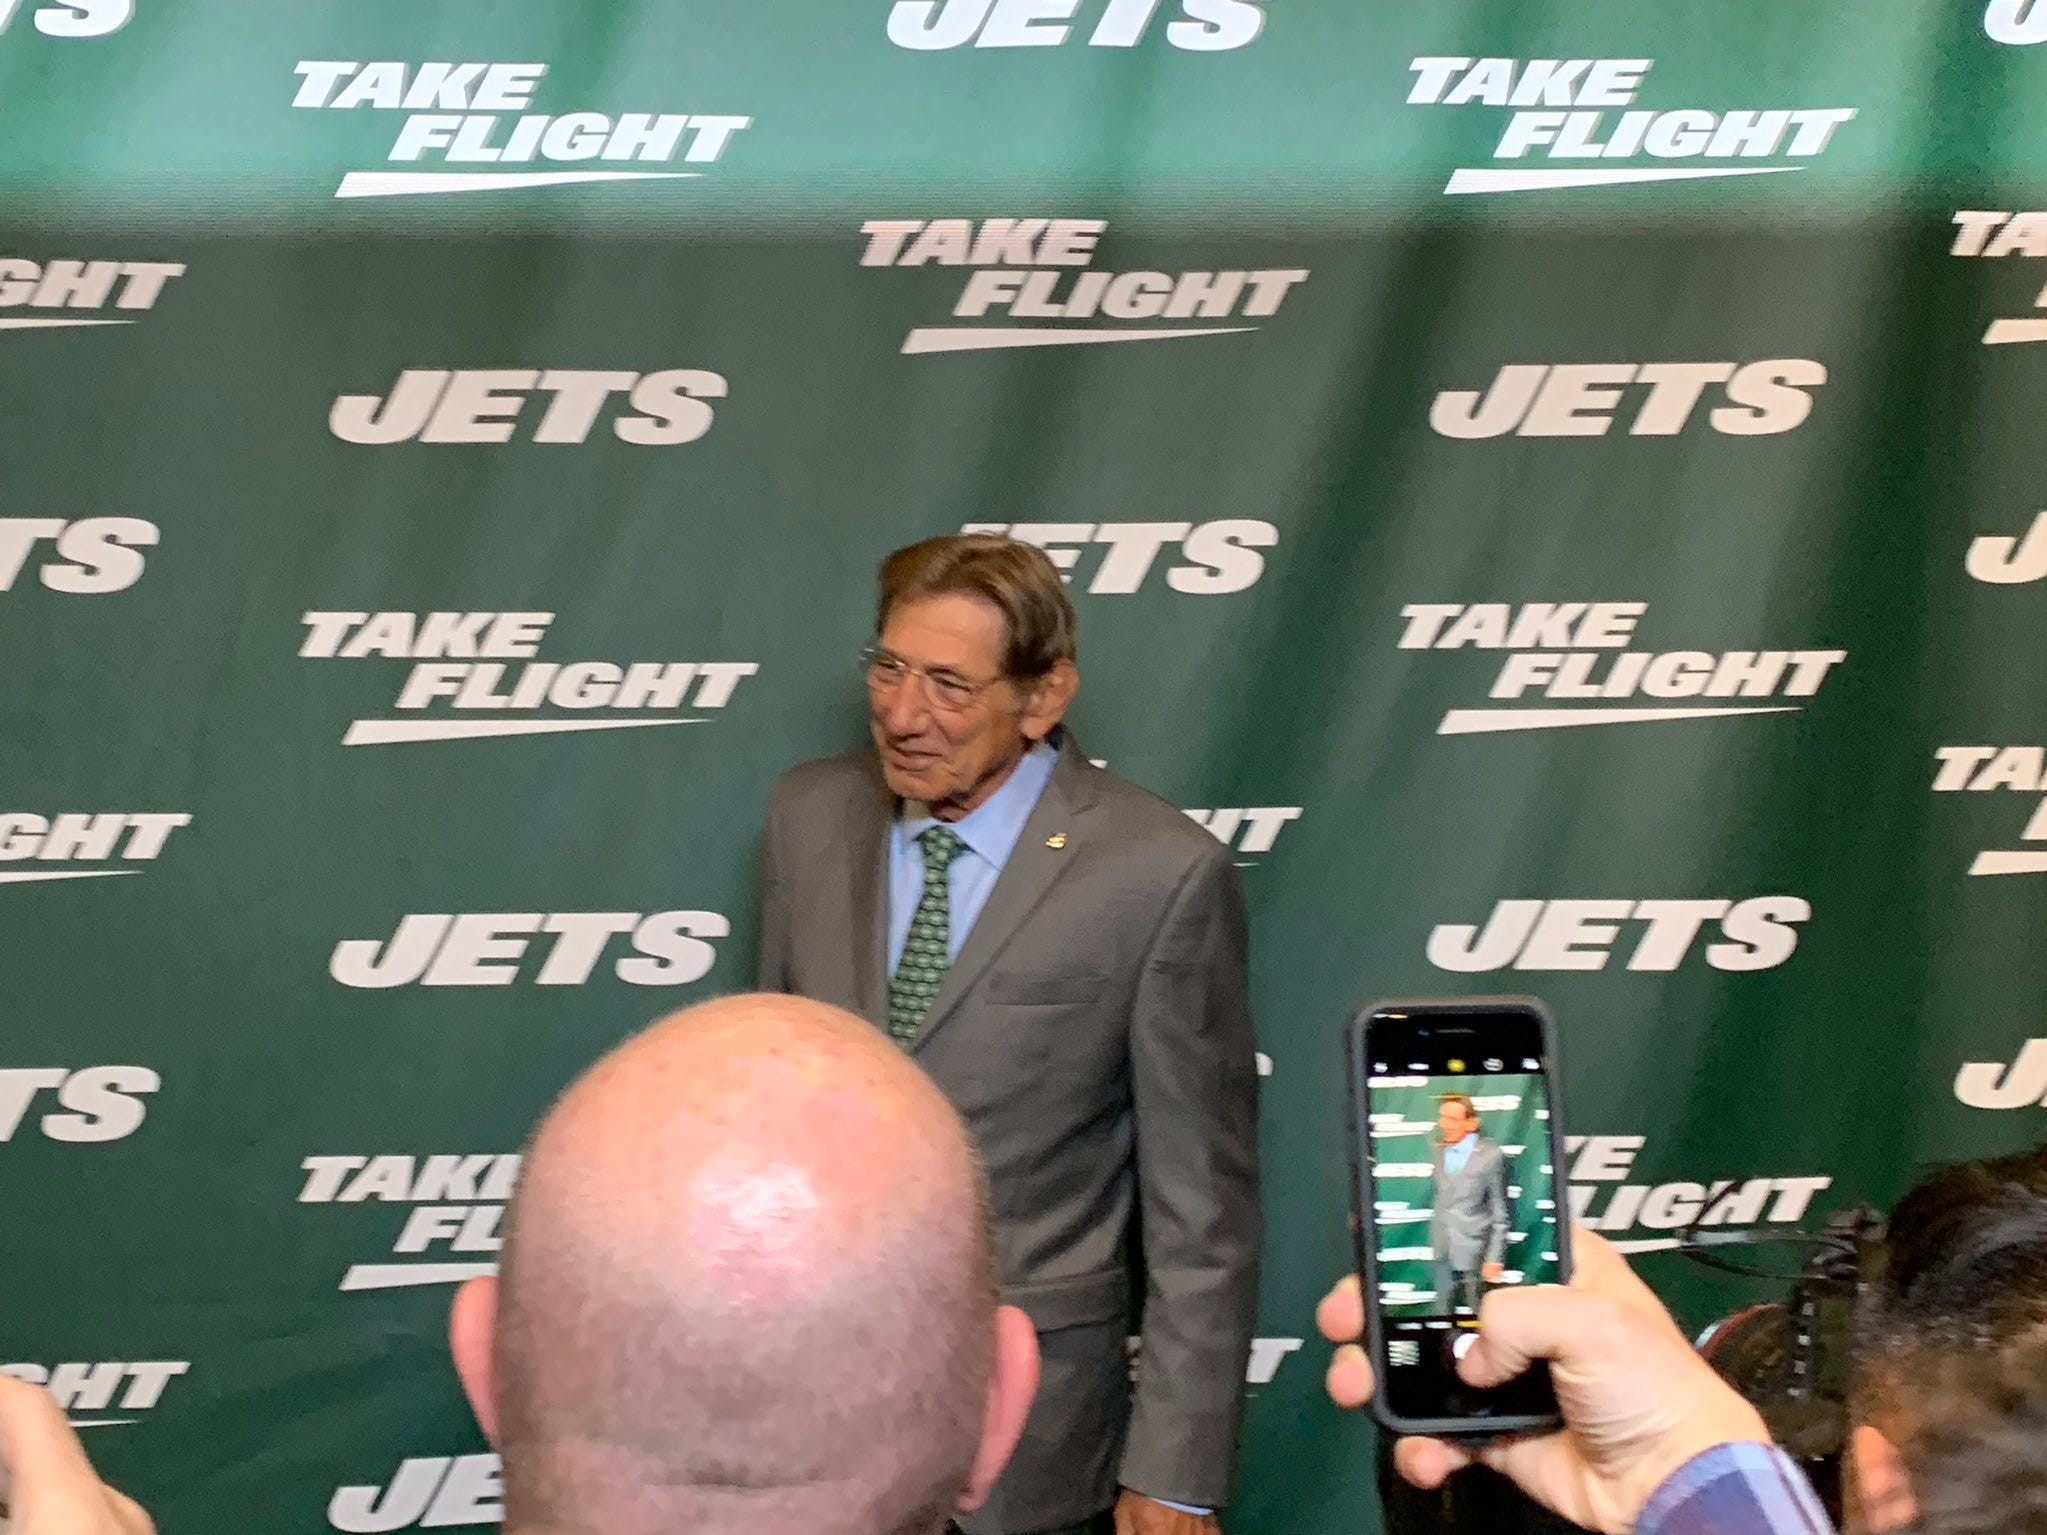 New York Jets legend Joe Namath was on hand as the team unveiled its new uniforms on Thursday, April 4, 2019.